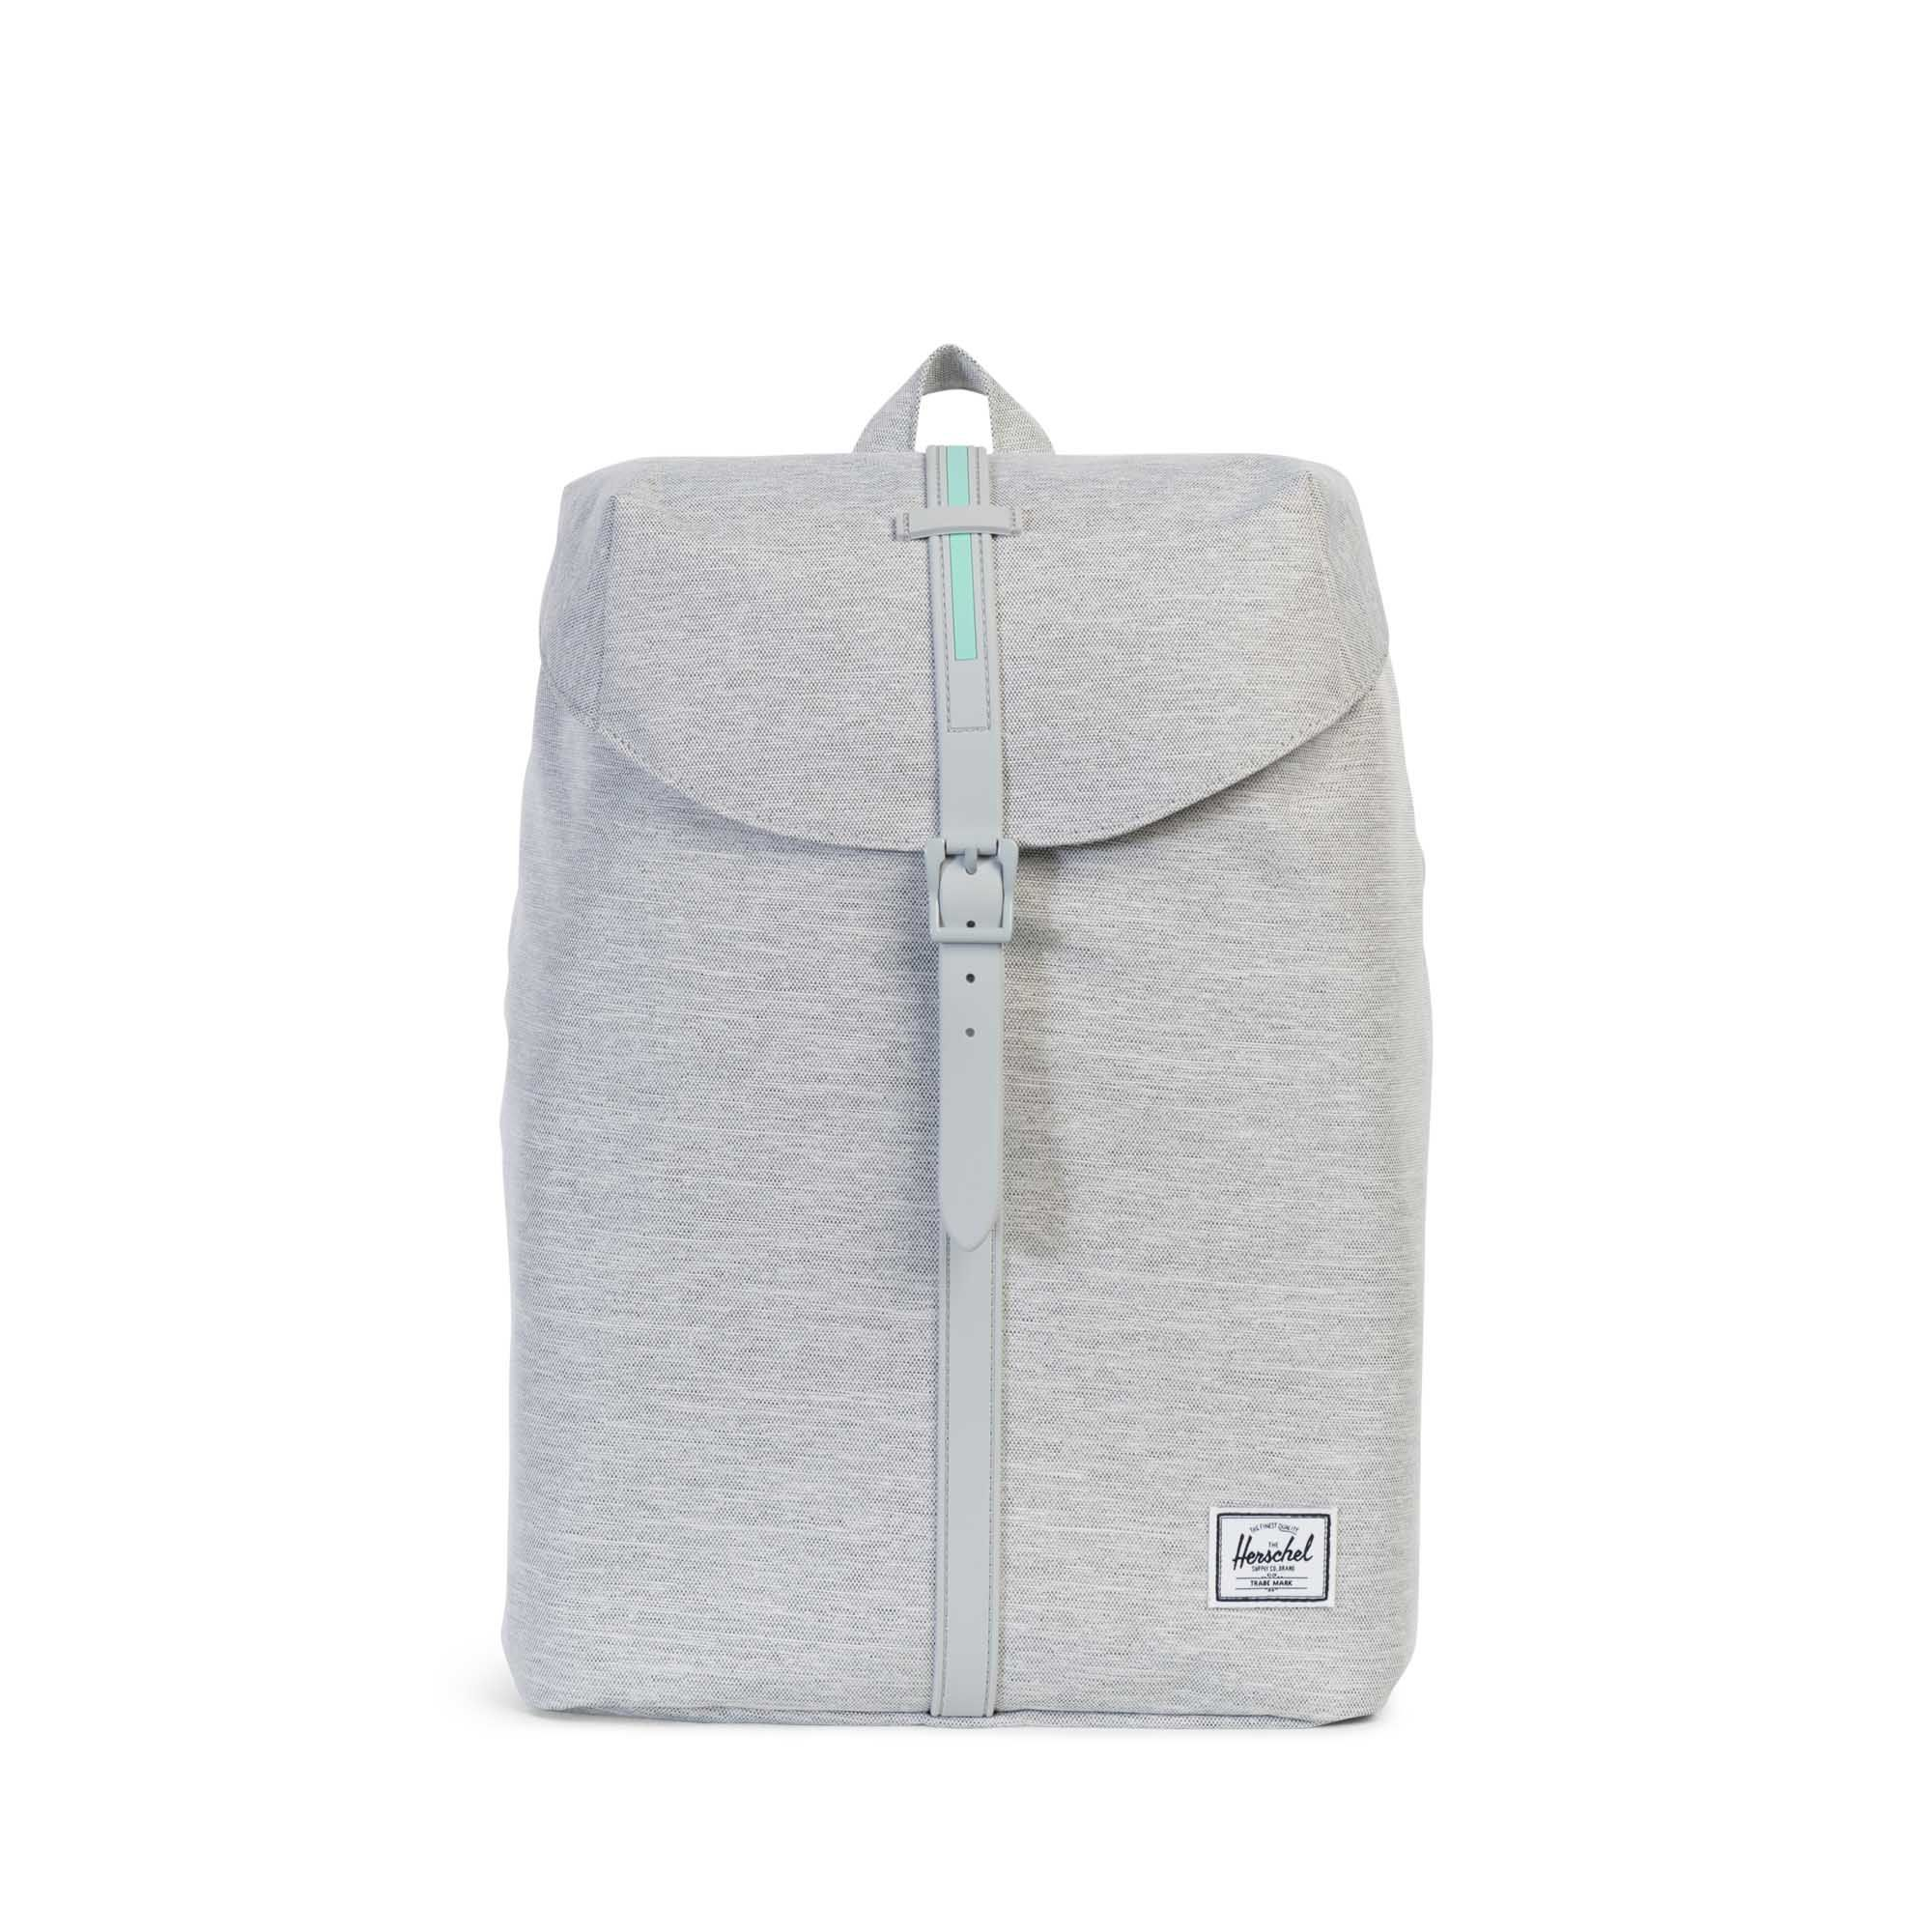 4490a4d9169 Post Backpack Mid-Volume